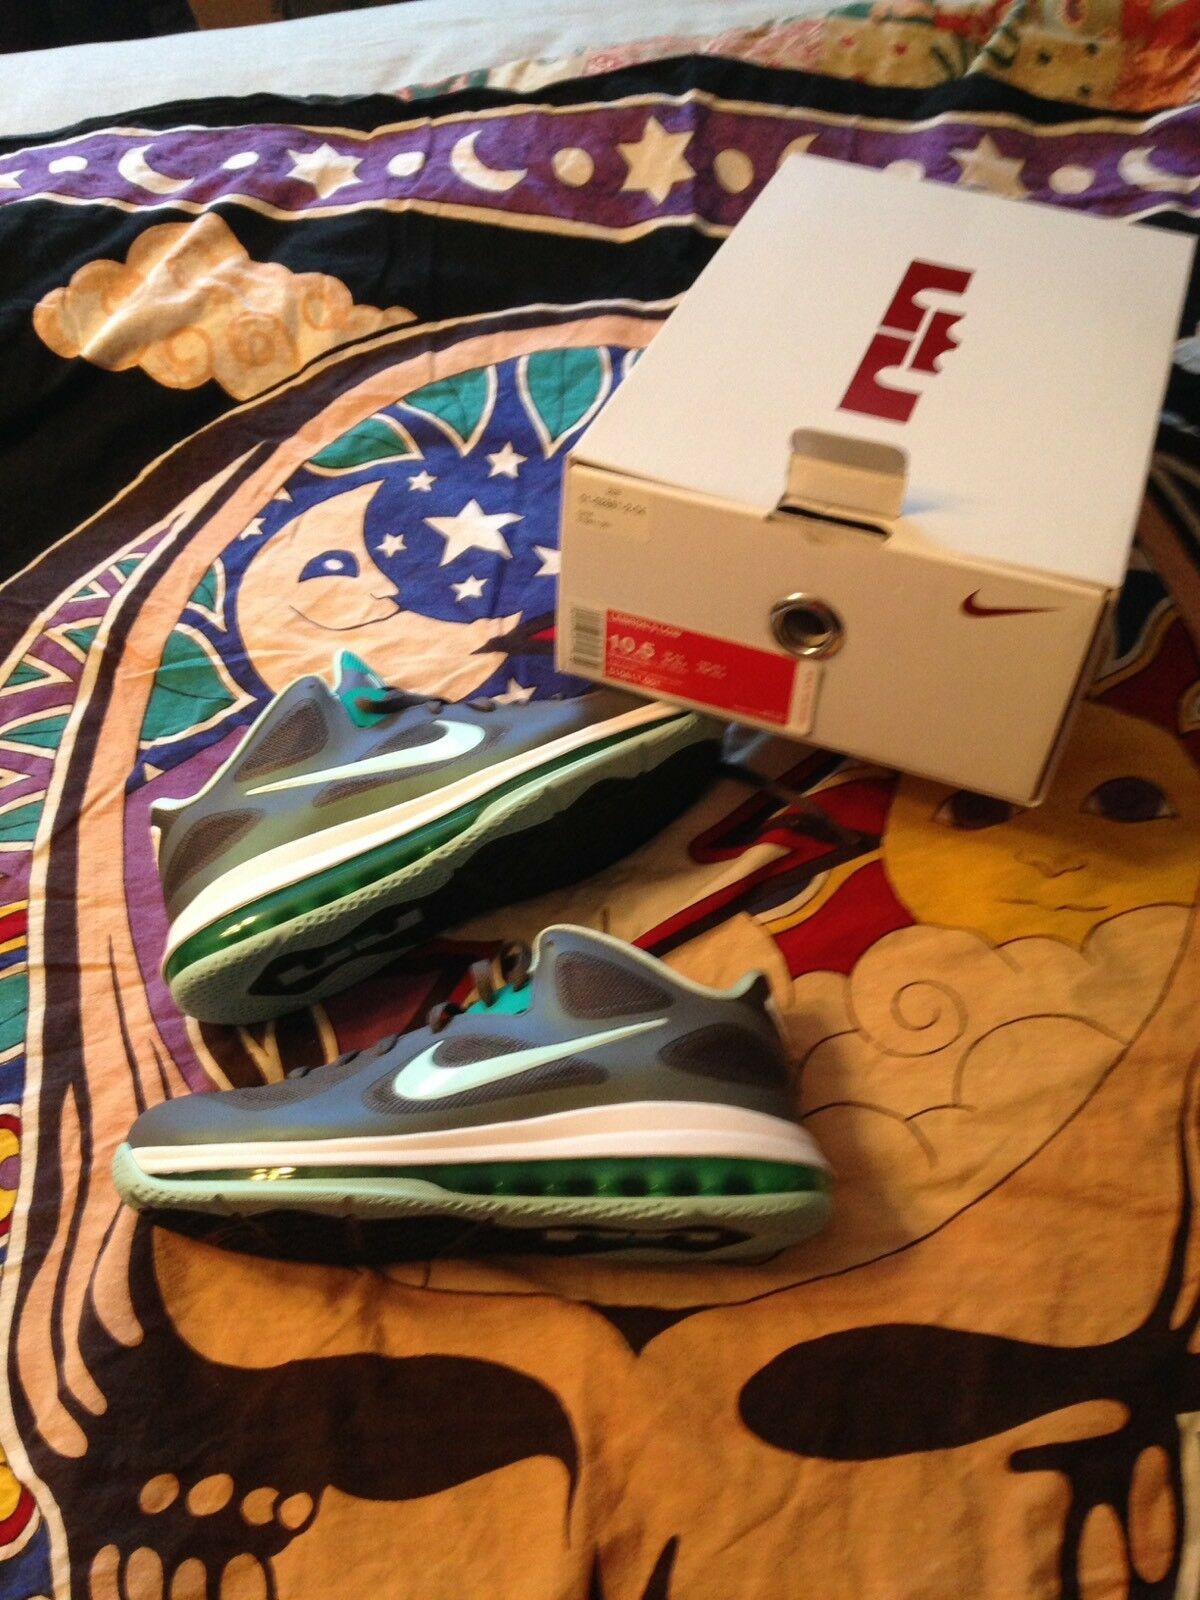 Nike Lebron 9 Low Easter Men's 10.5 NIB New shoes for men and women, limited time discount